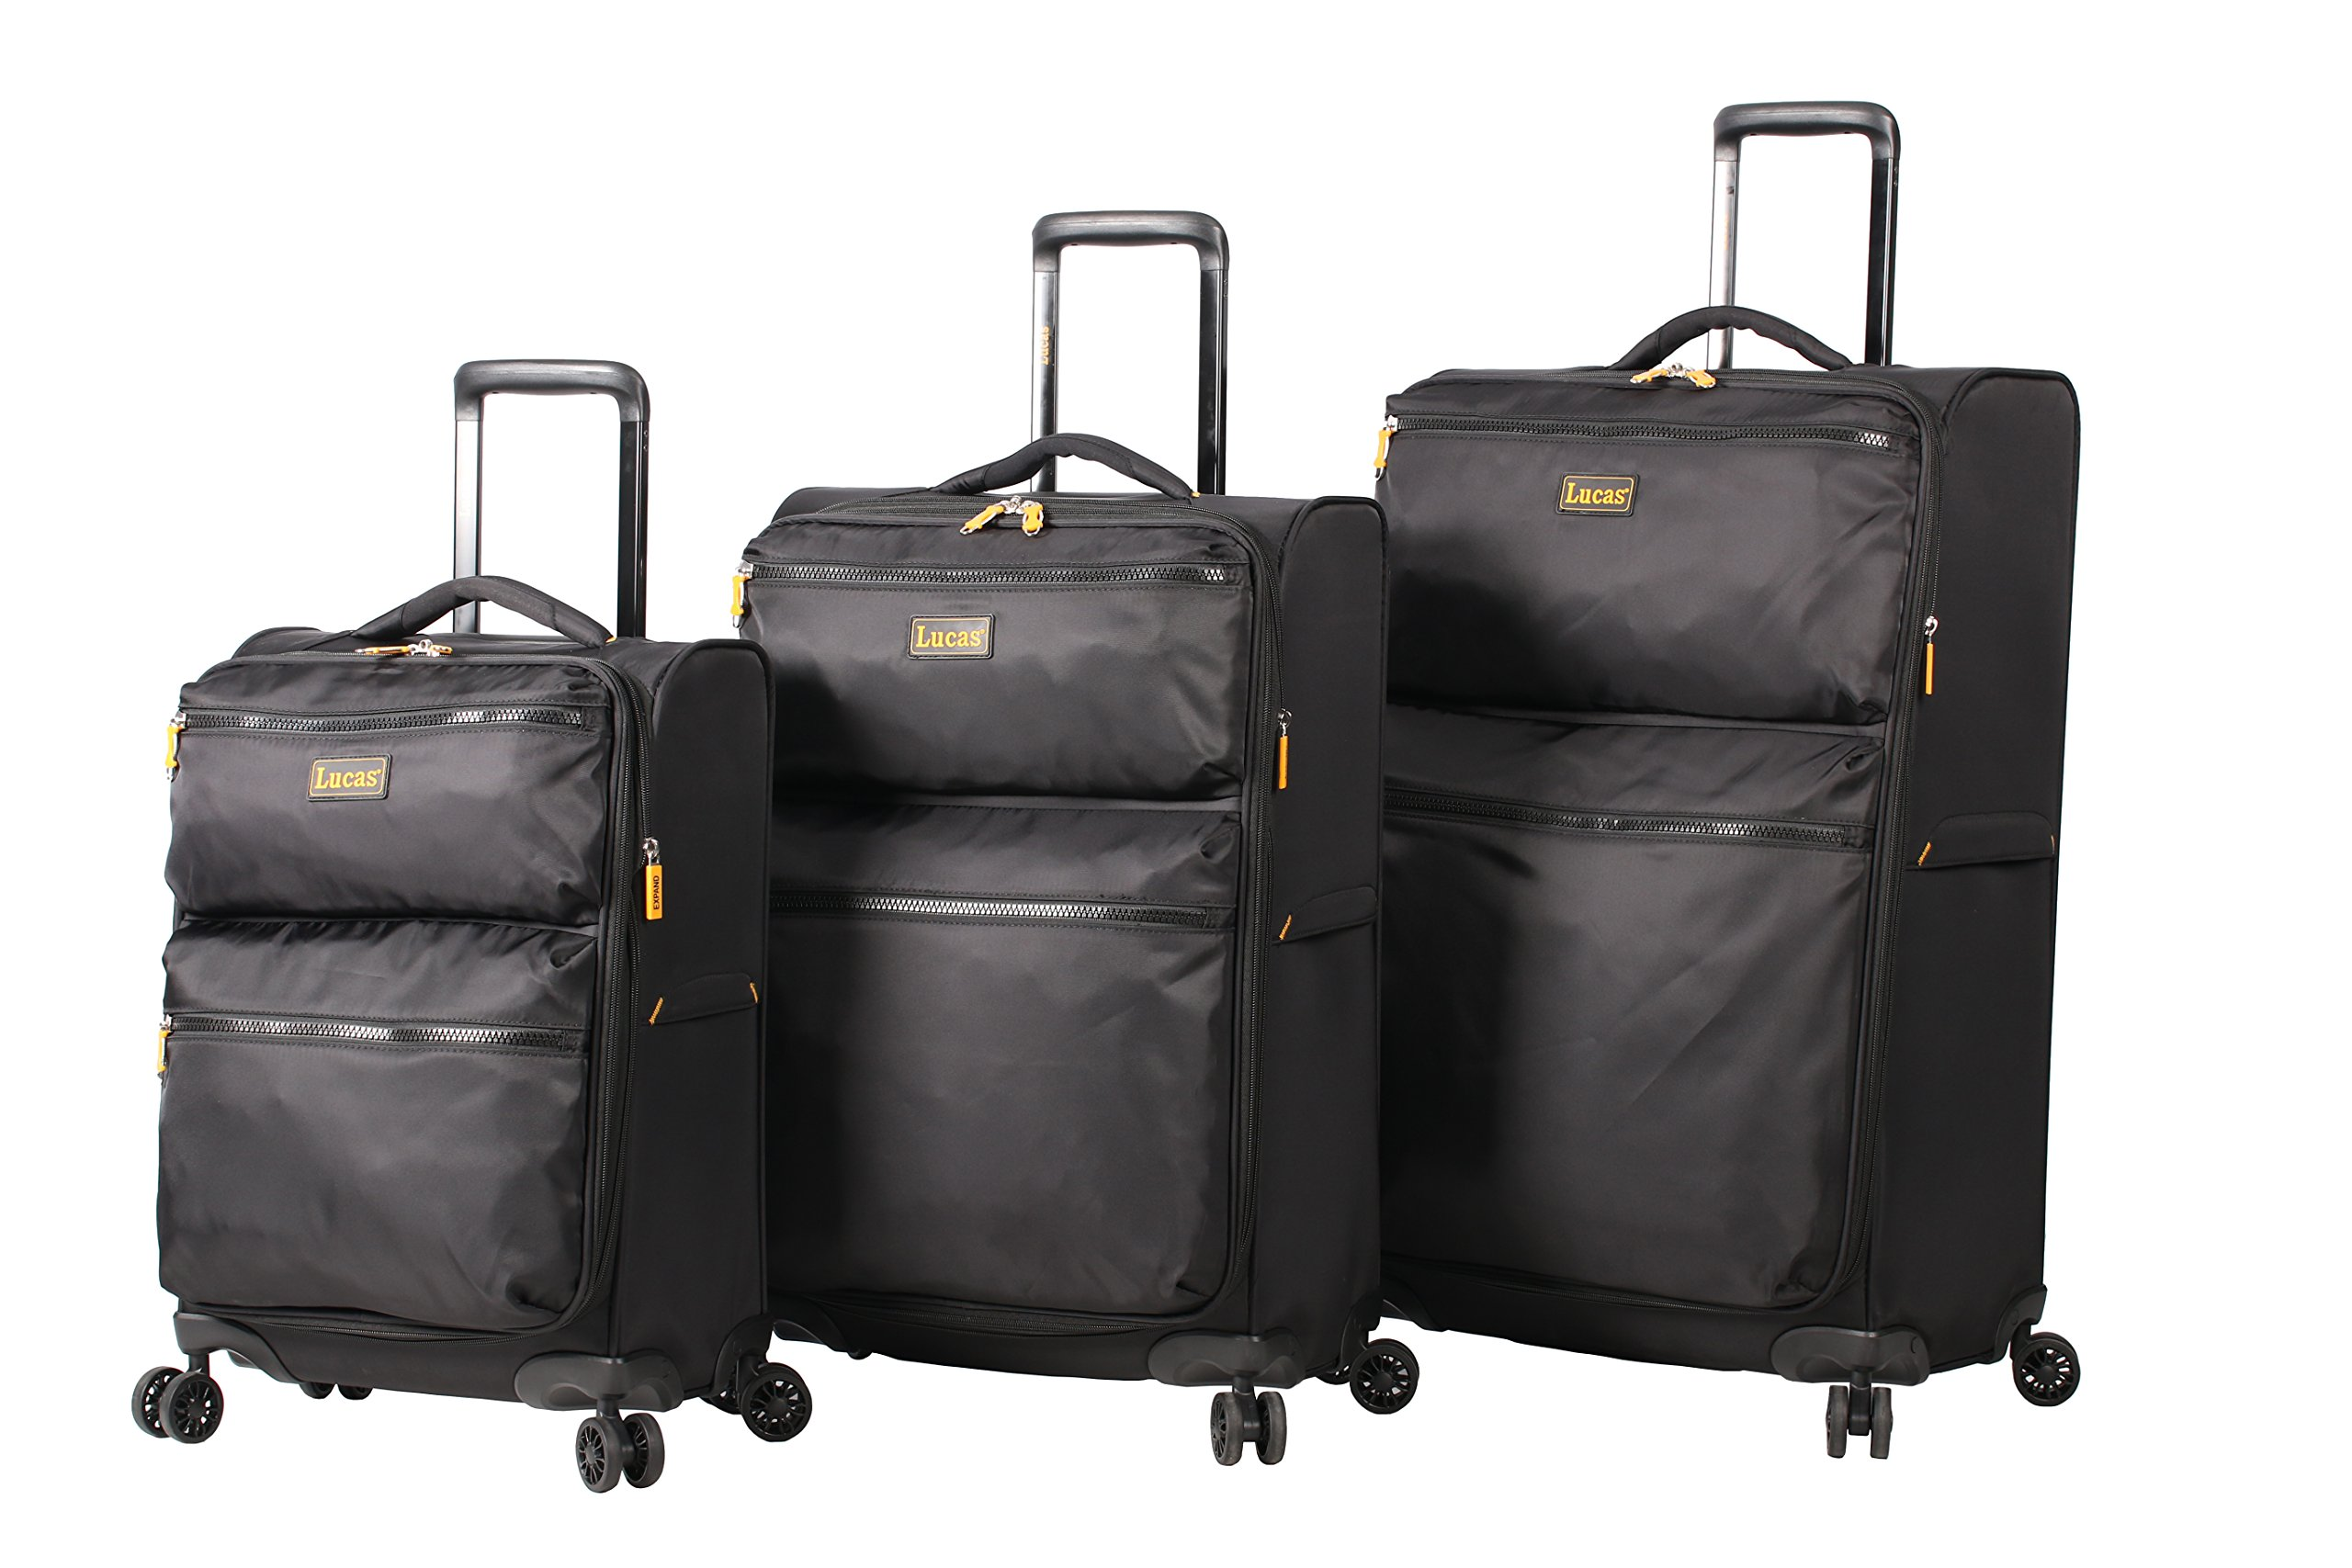 Lucas Ultra Lightweight 3 Piece Expandable Suitcase Set With Spinner Wheels (One Size, Black) by Lucas